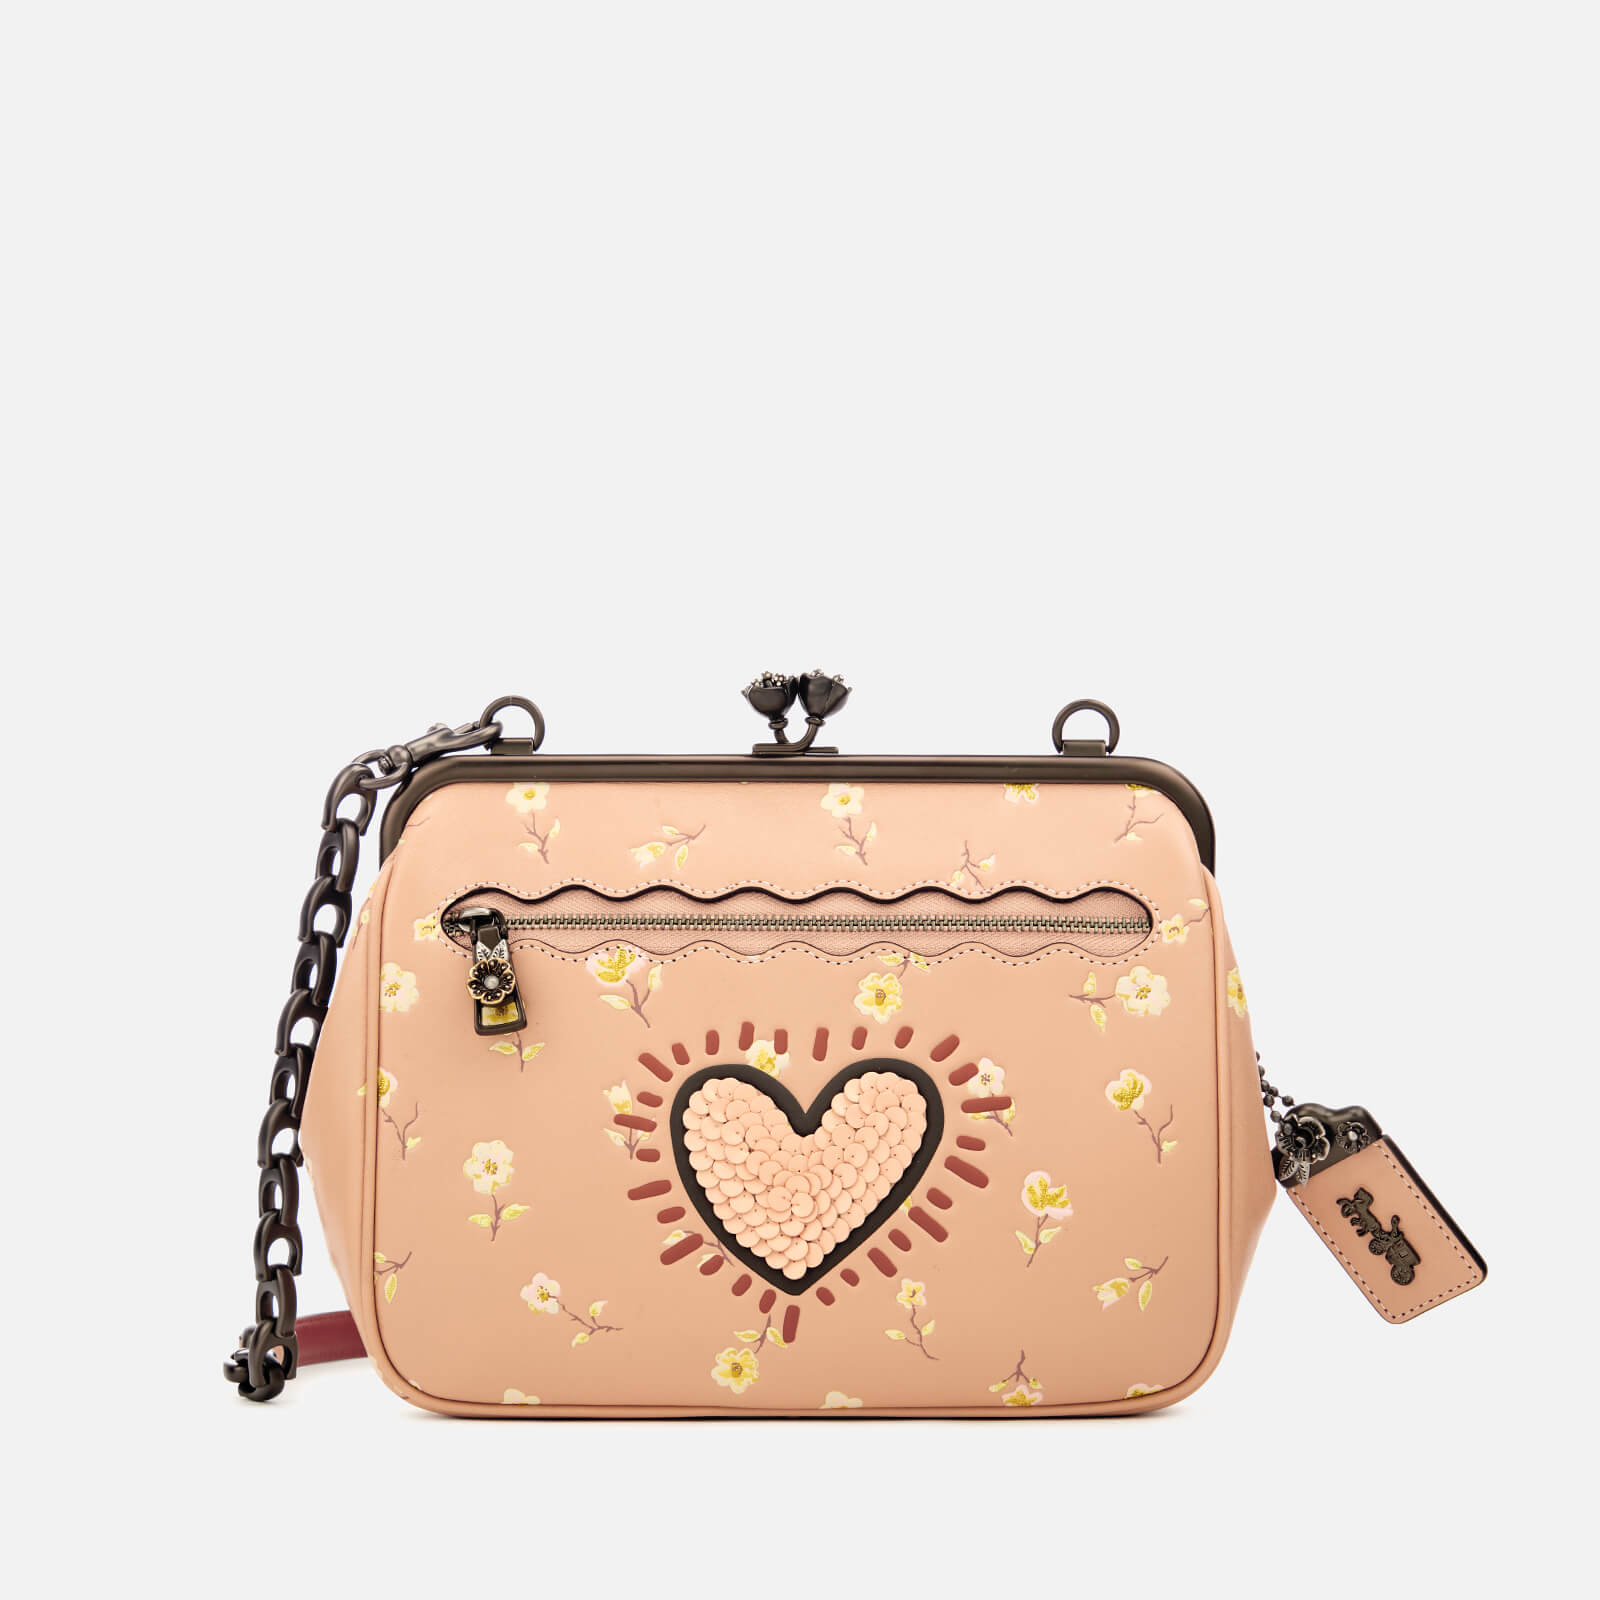 4b86352dbd0c Coach 1941 Women s Coach X Keith Haring Kisslock Cross Body Bag - Beechwood  - Free UK Delivery over £50